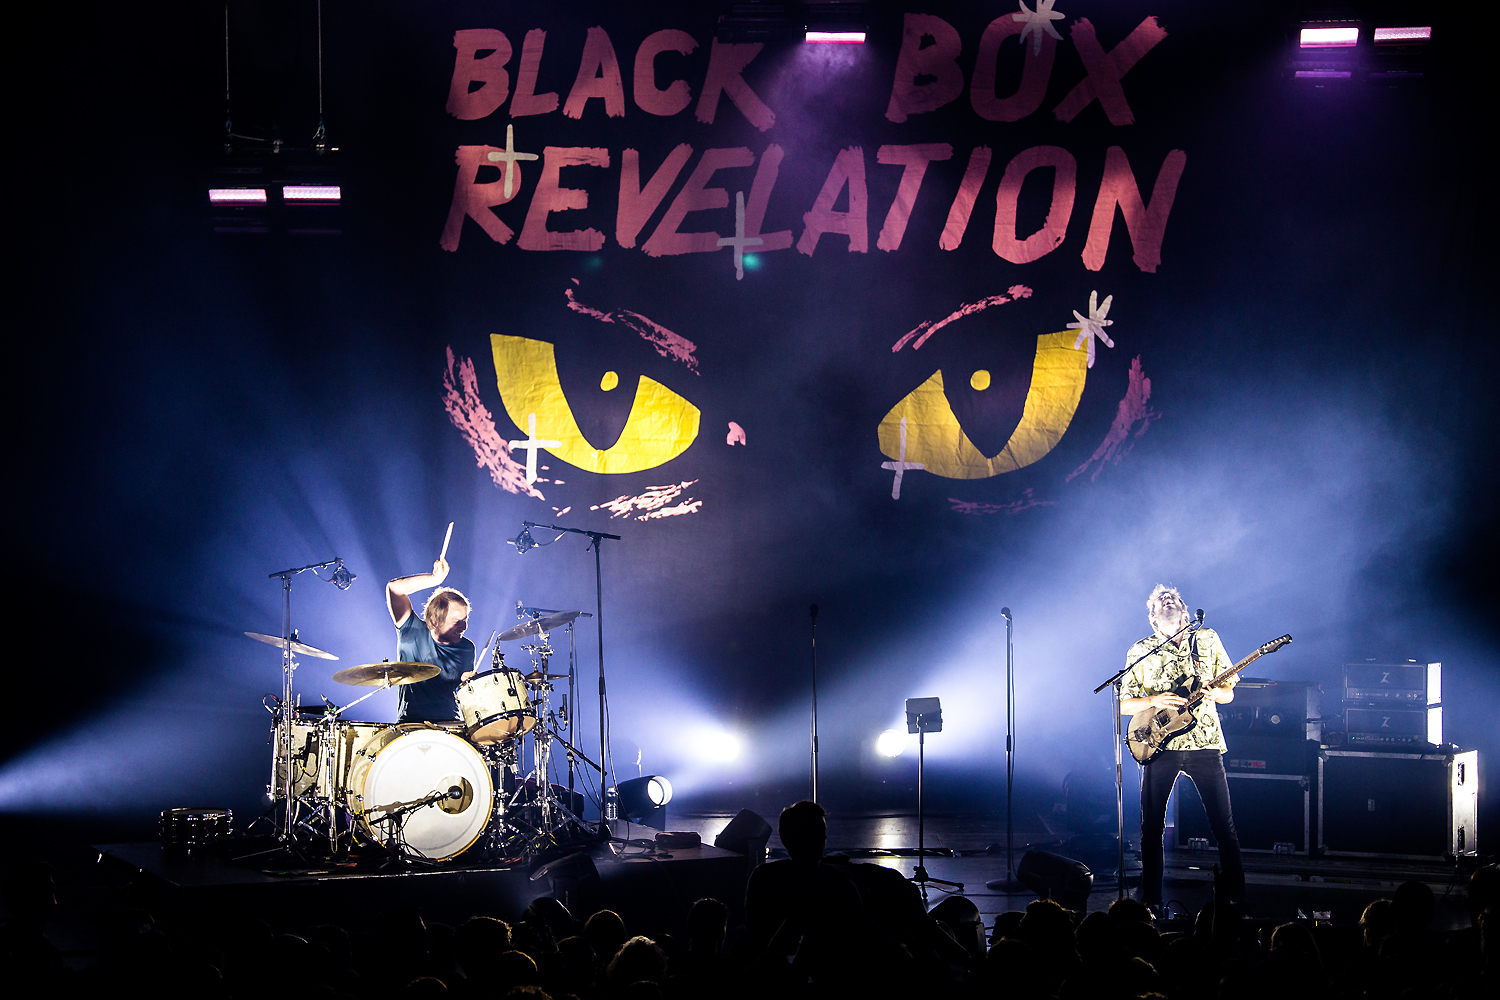 Black Box Revelation @ AB Brussel 2016 (Jan Van den Bulck)